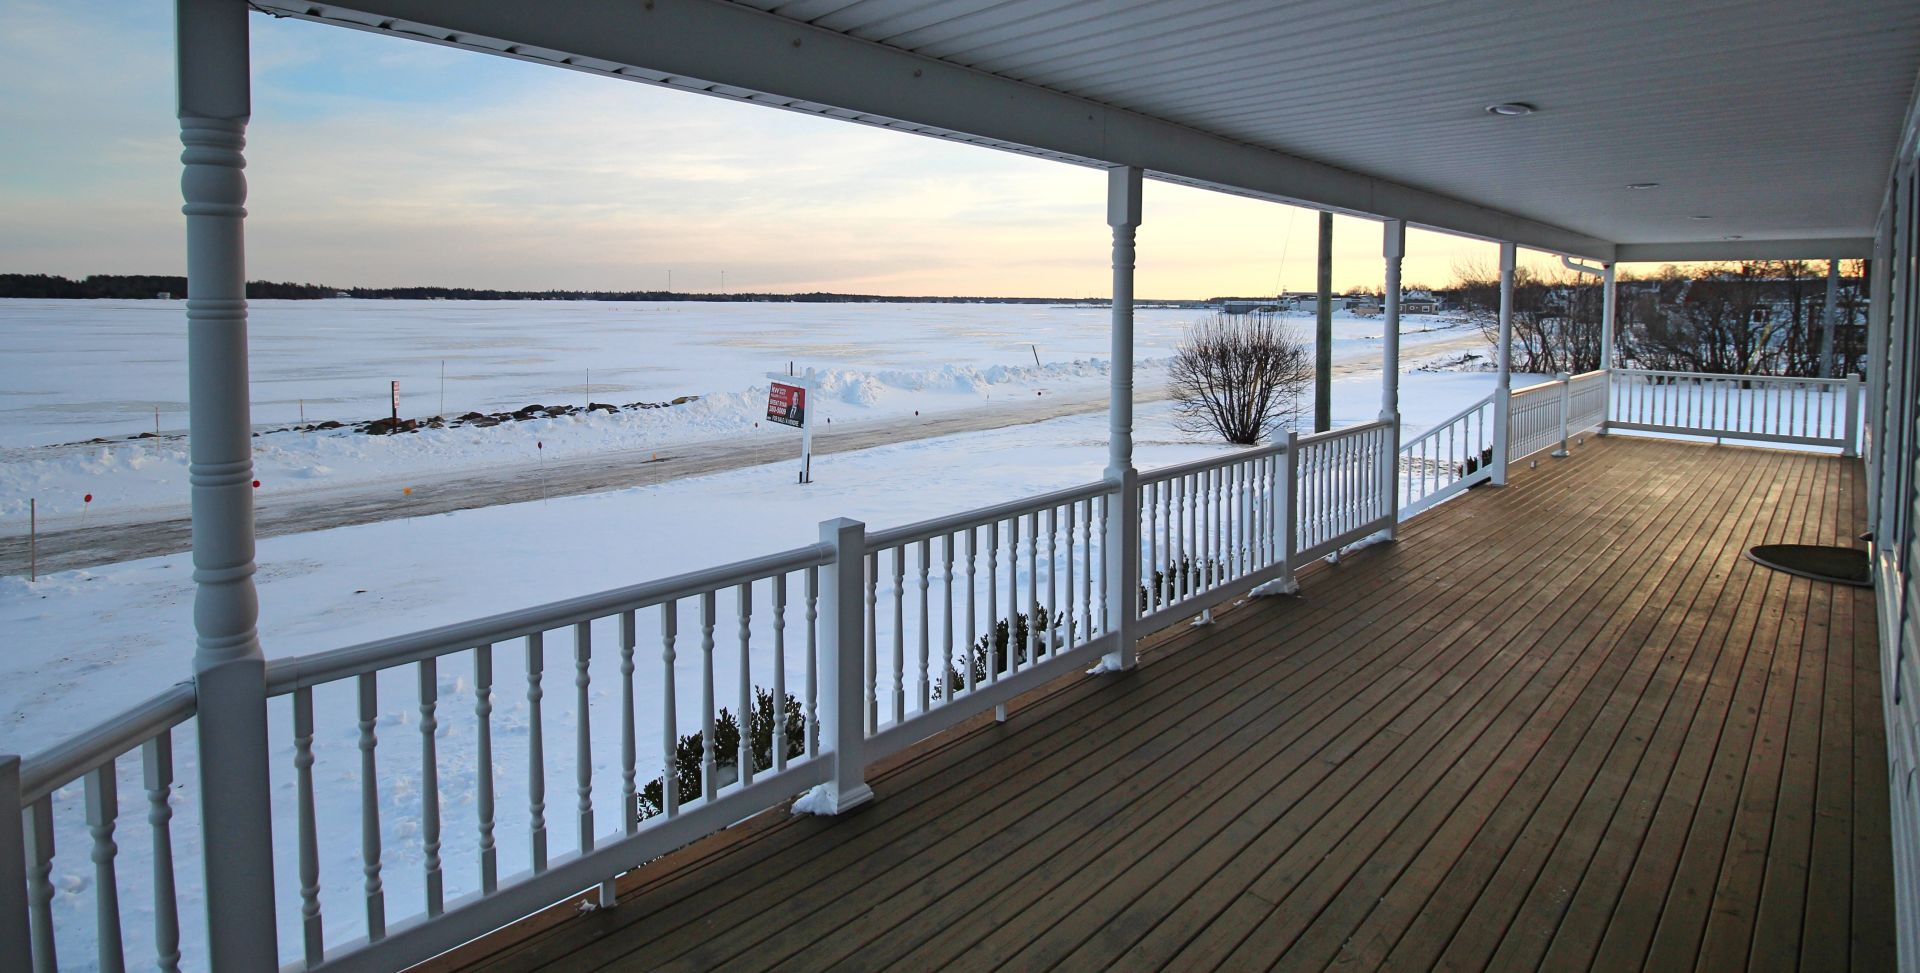 DON'T LET THE WINTER BLUES GET IN THE WAY OF THE SALE OF YOUR HOME!